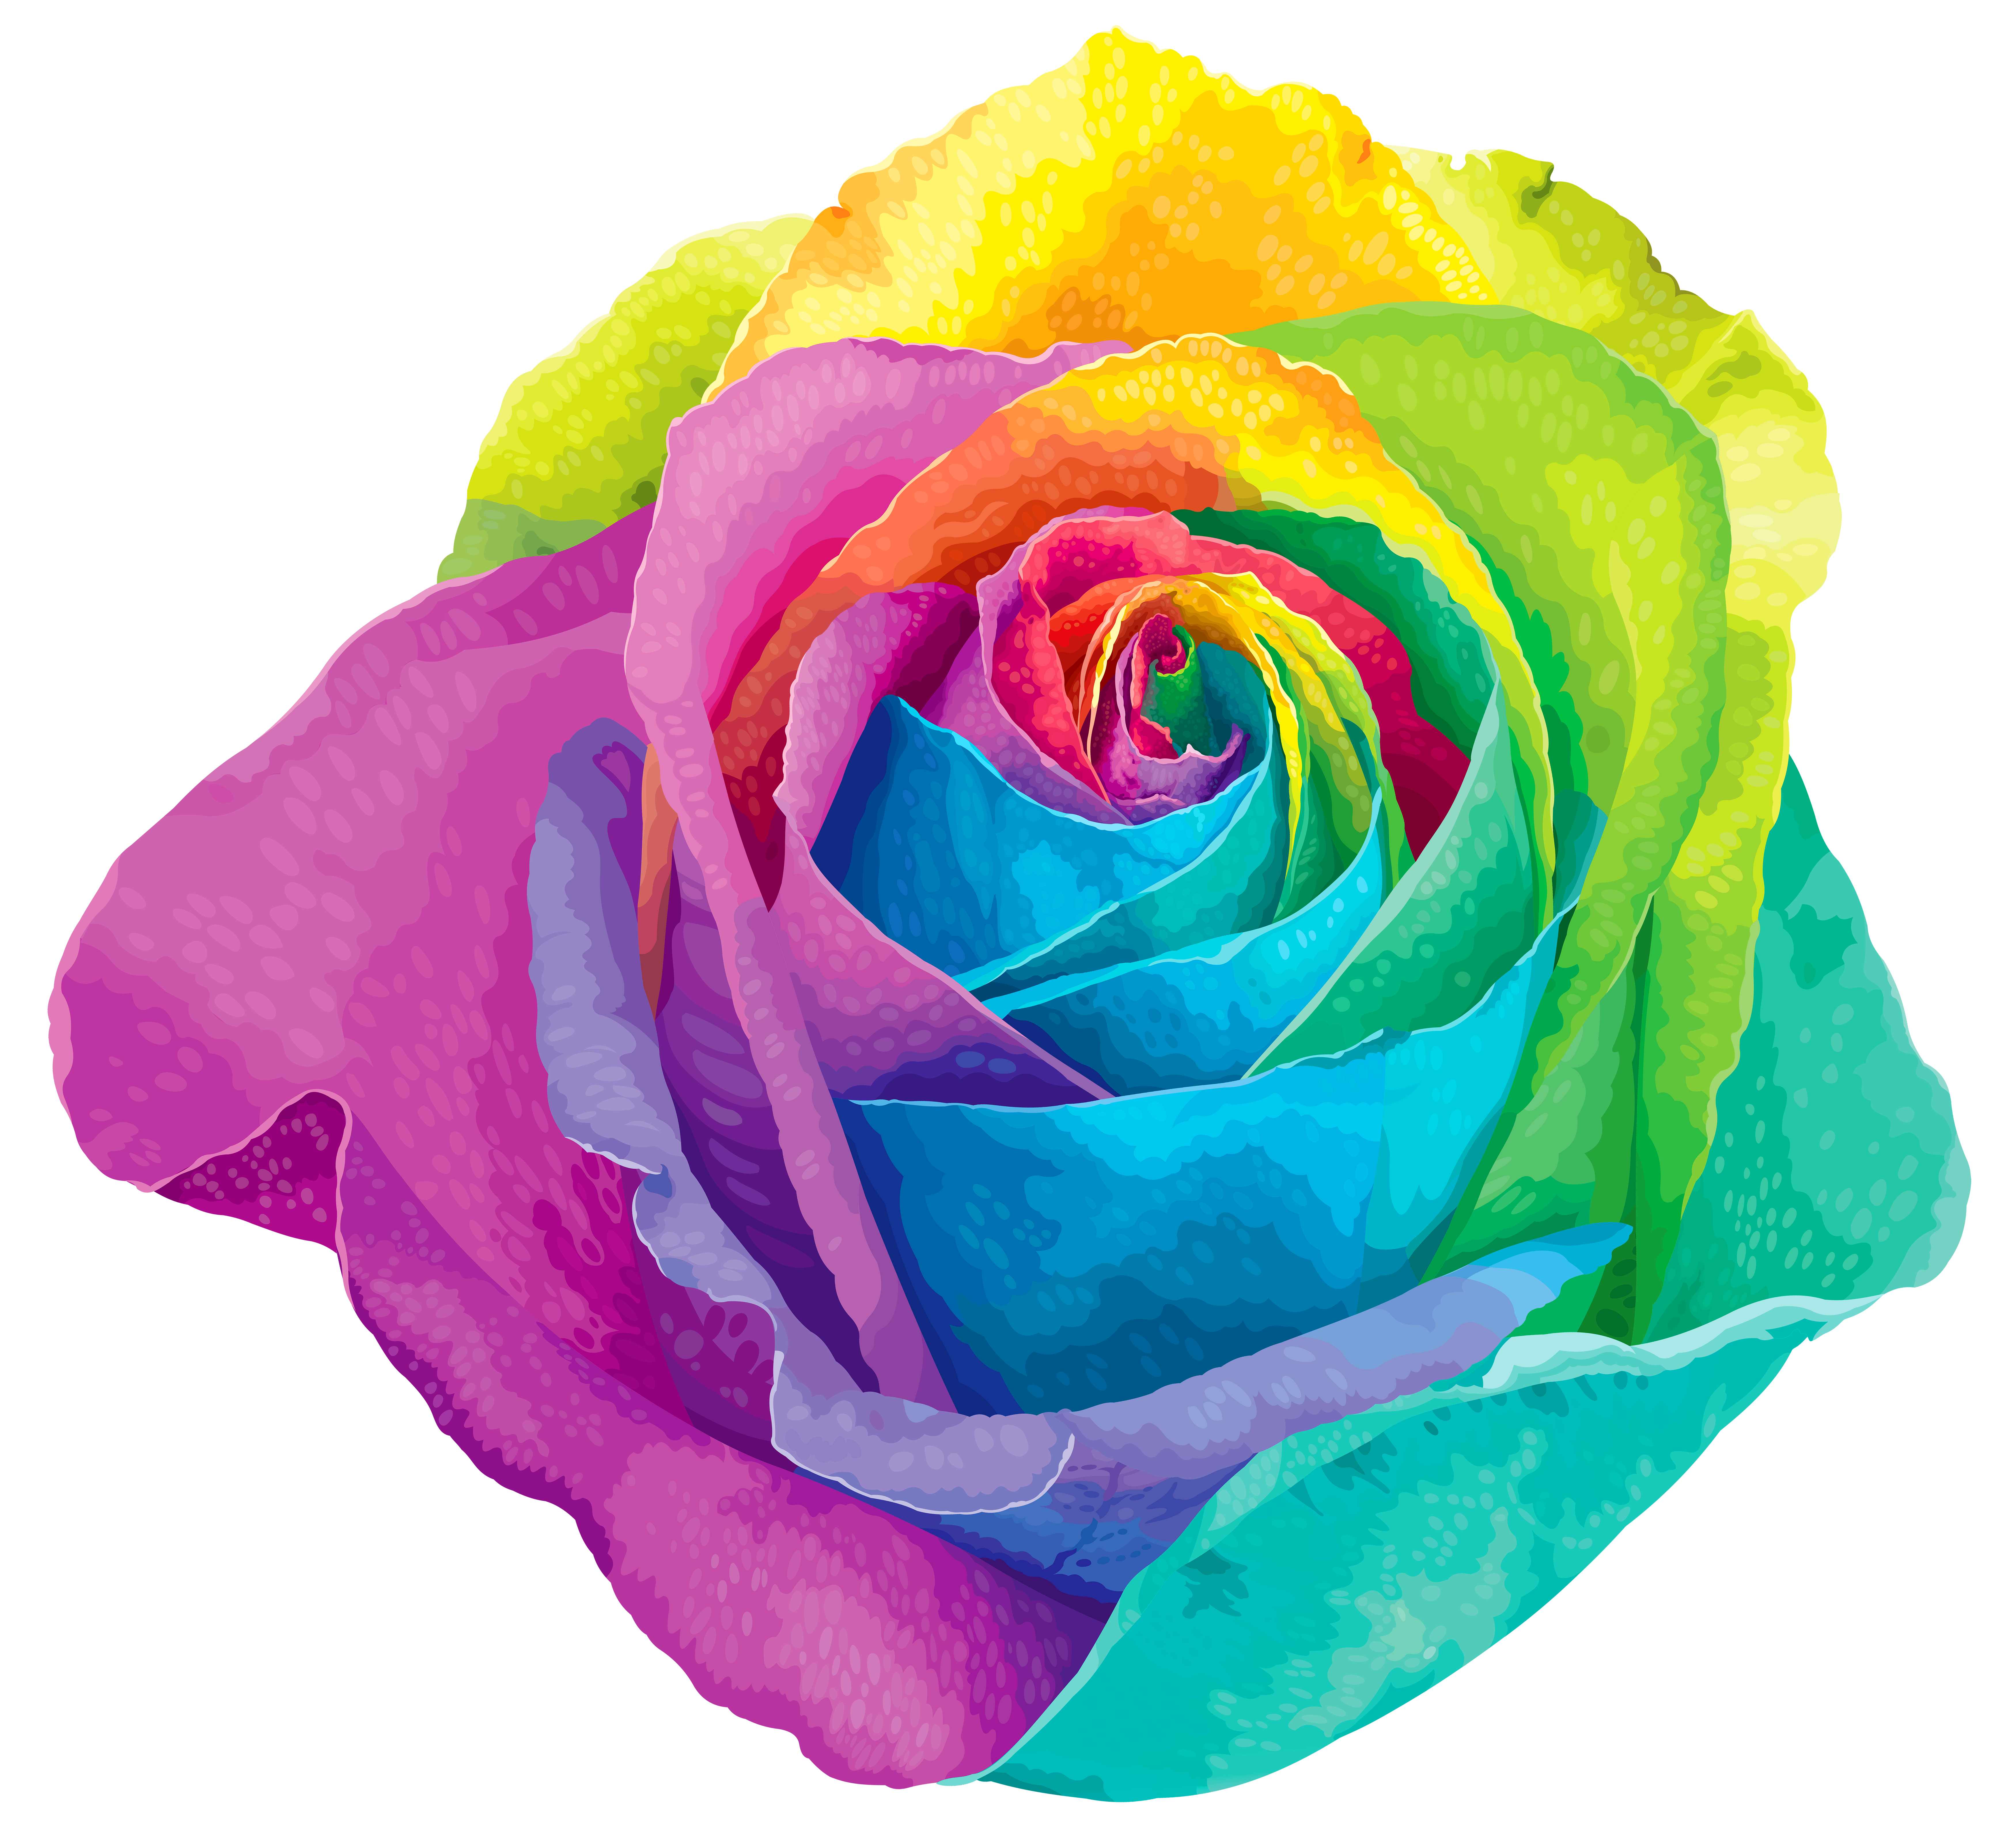 Multi colored clipart banner royalty free download Multicolored Rainbow Rose Transparent PNG Clip Art Image ... banner royalty free download